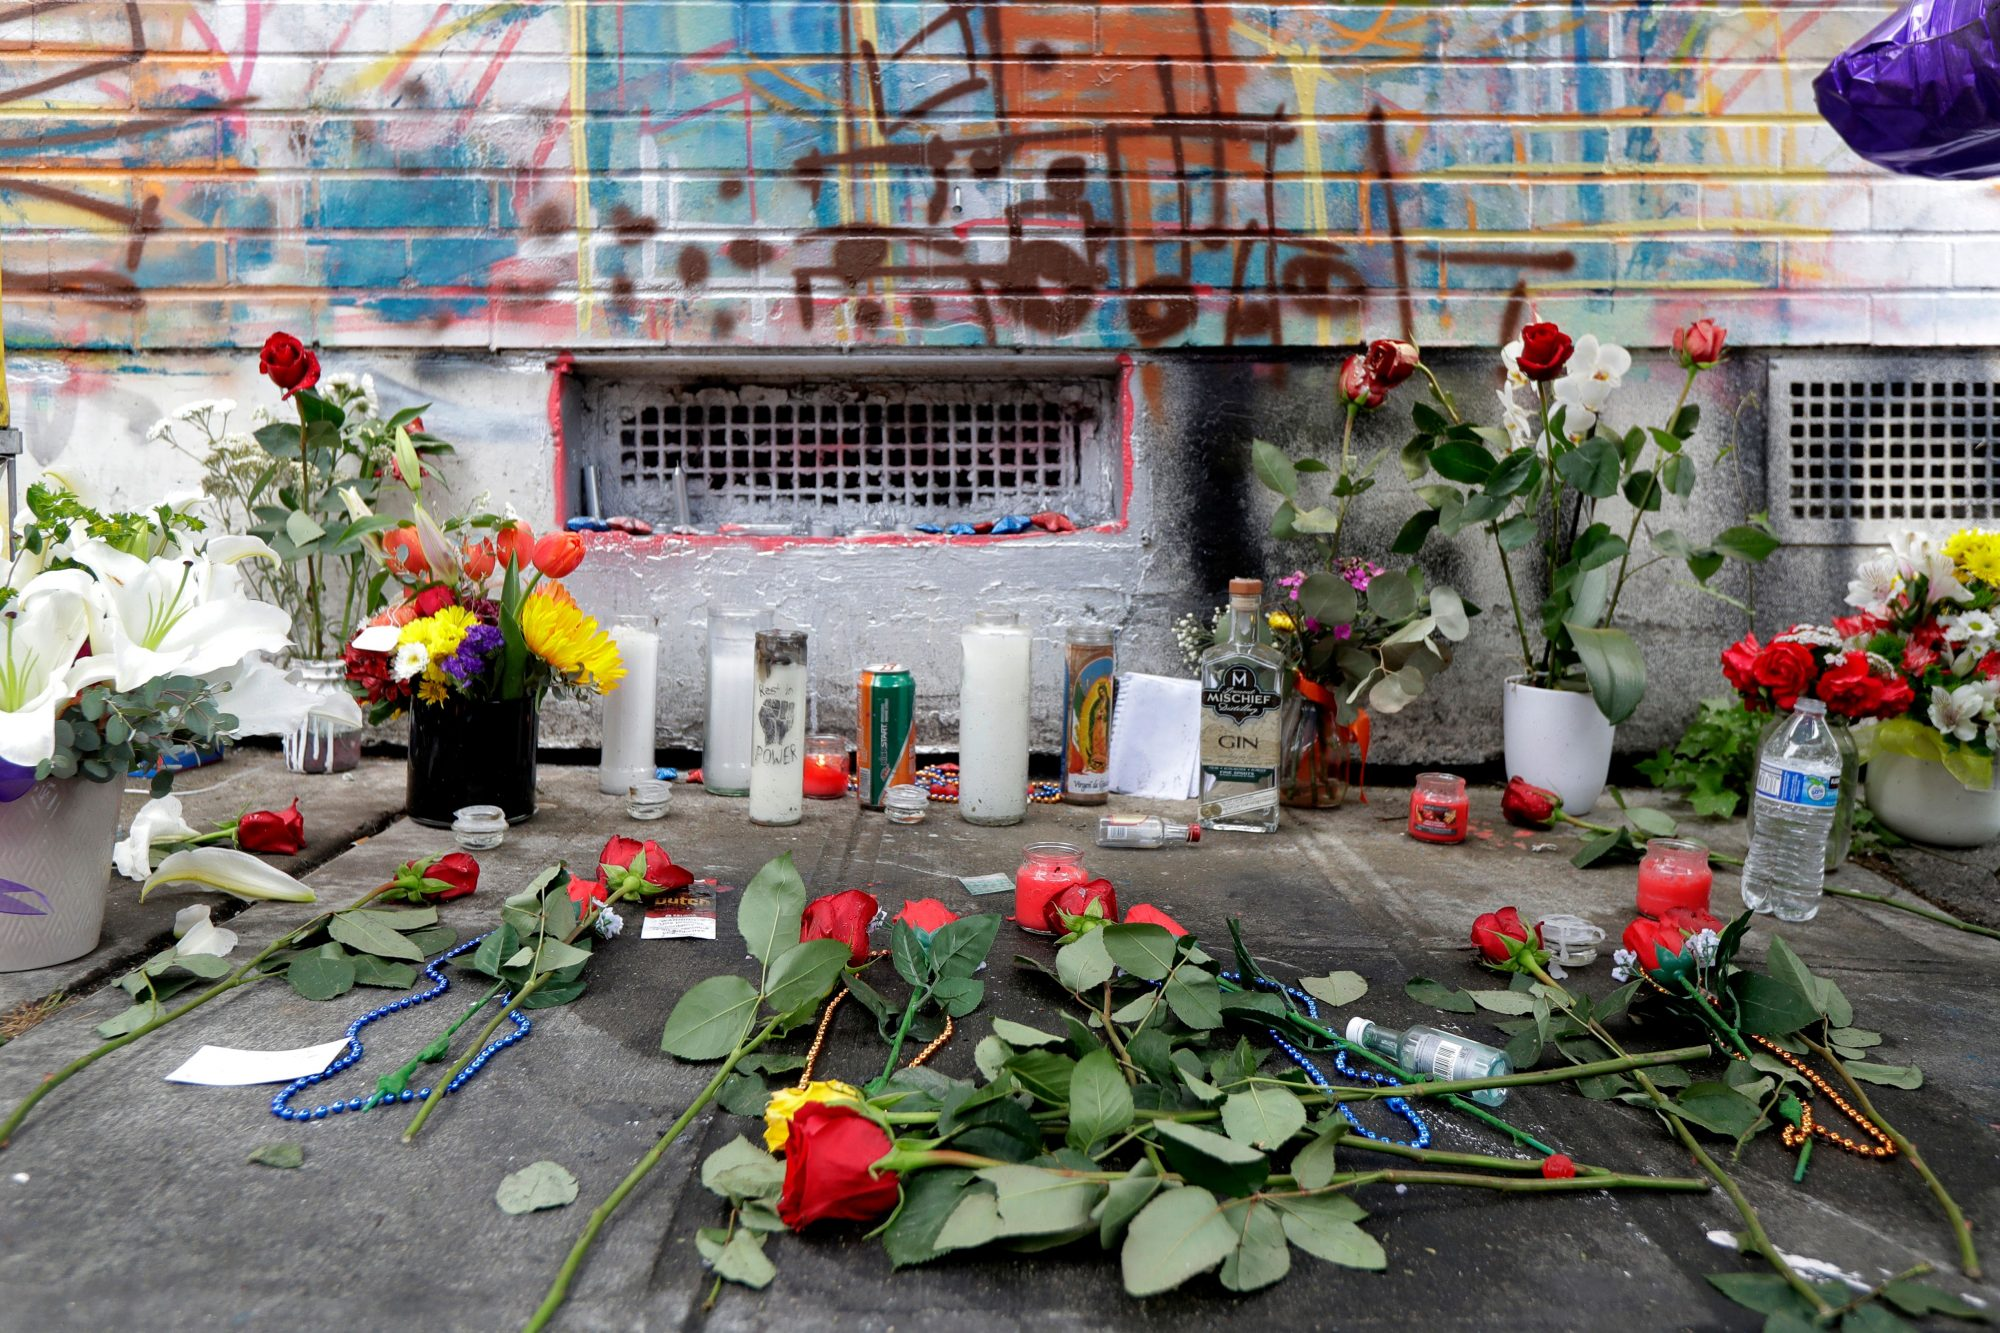 16-year-old Antonio Mays Jr. was fatally shot in Seattle's CHOP.